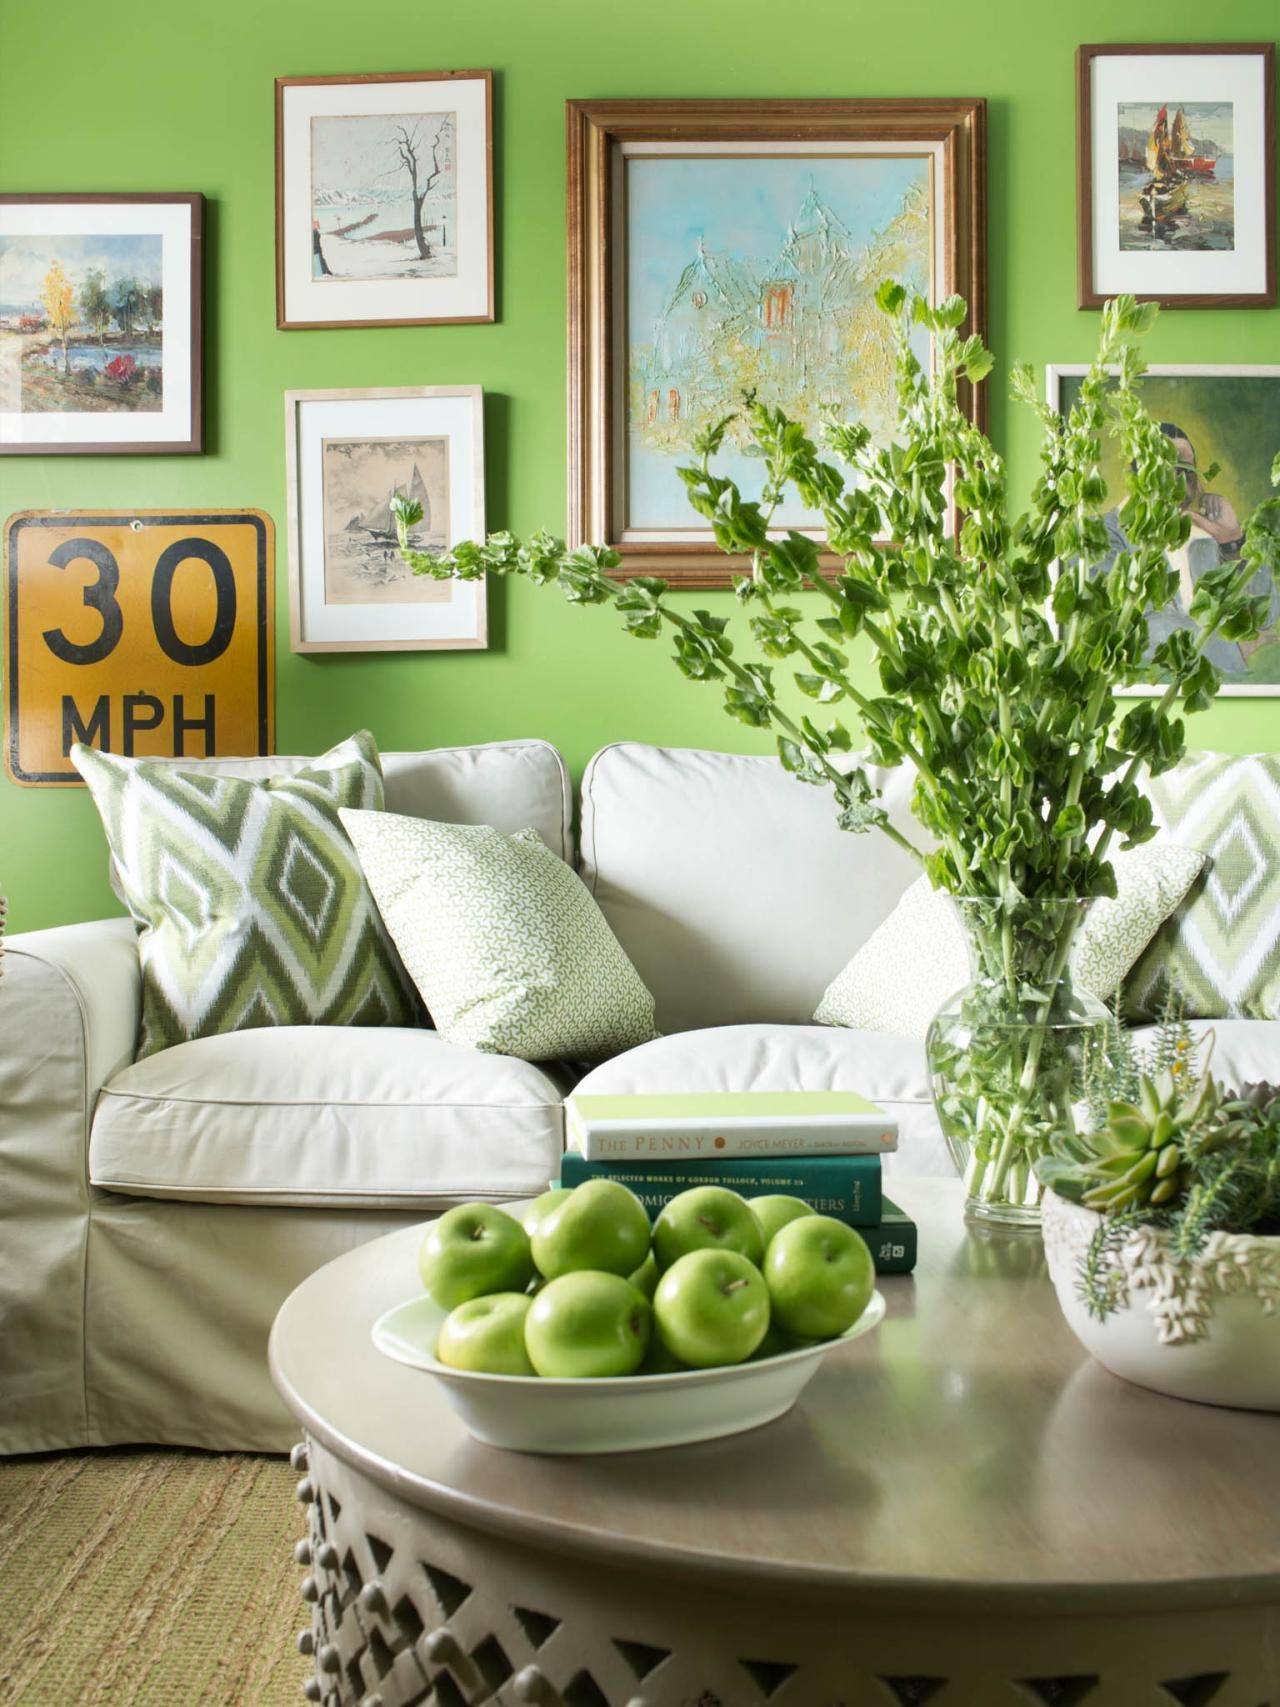 introducing the 2017 pantone color of the year: greenery | pantone